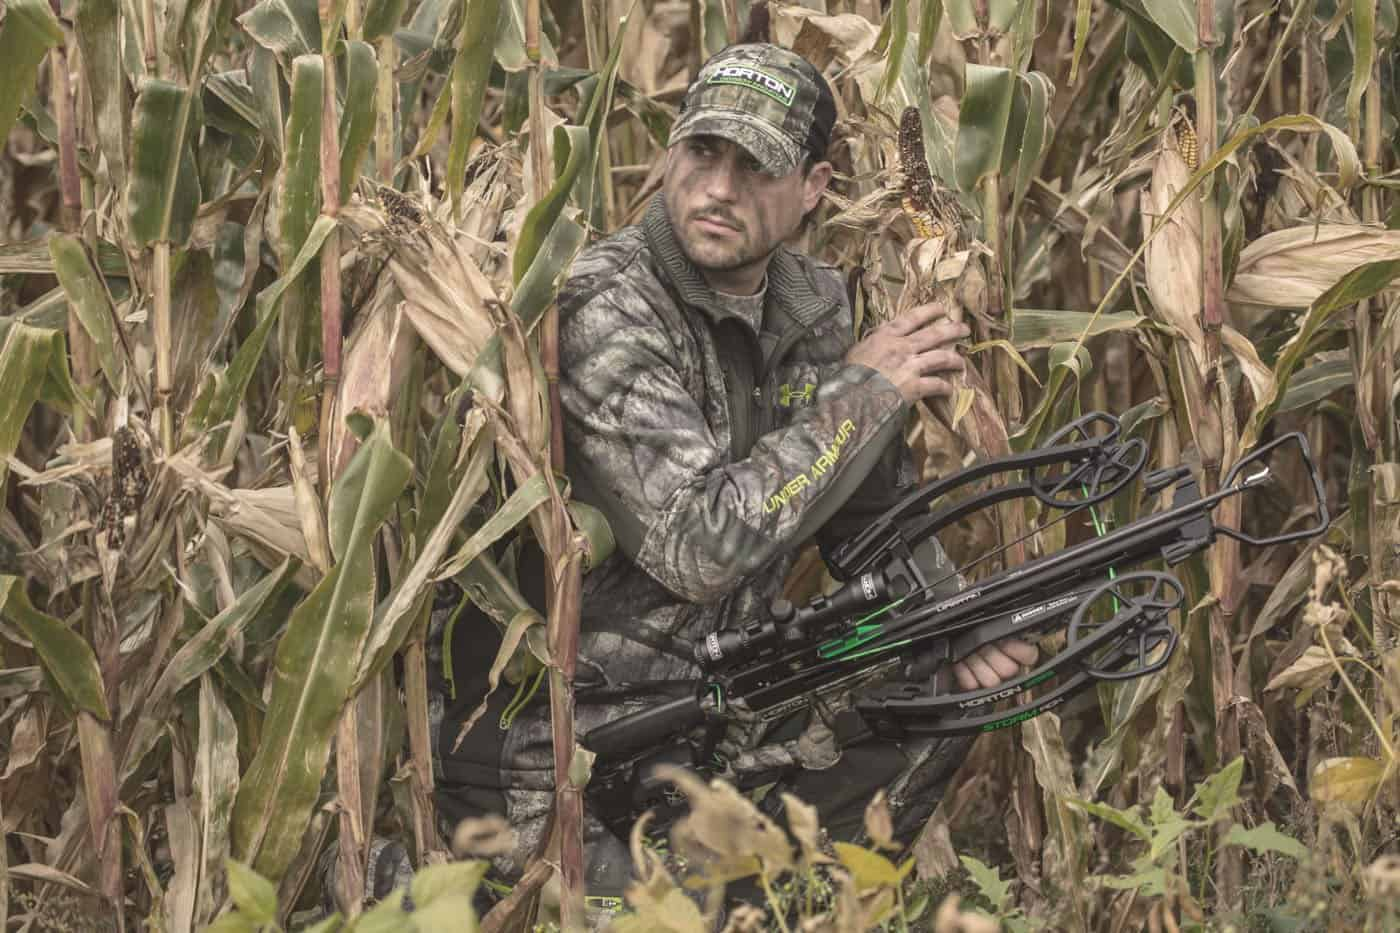 hunting man hiding in the corn fields with his crossbow